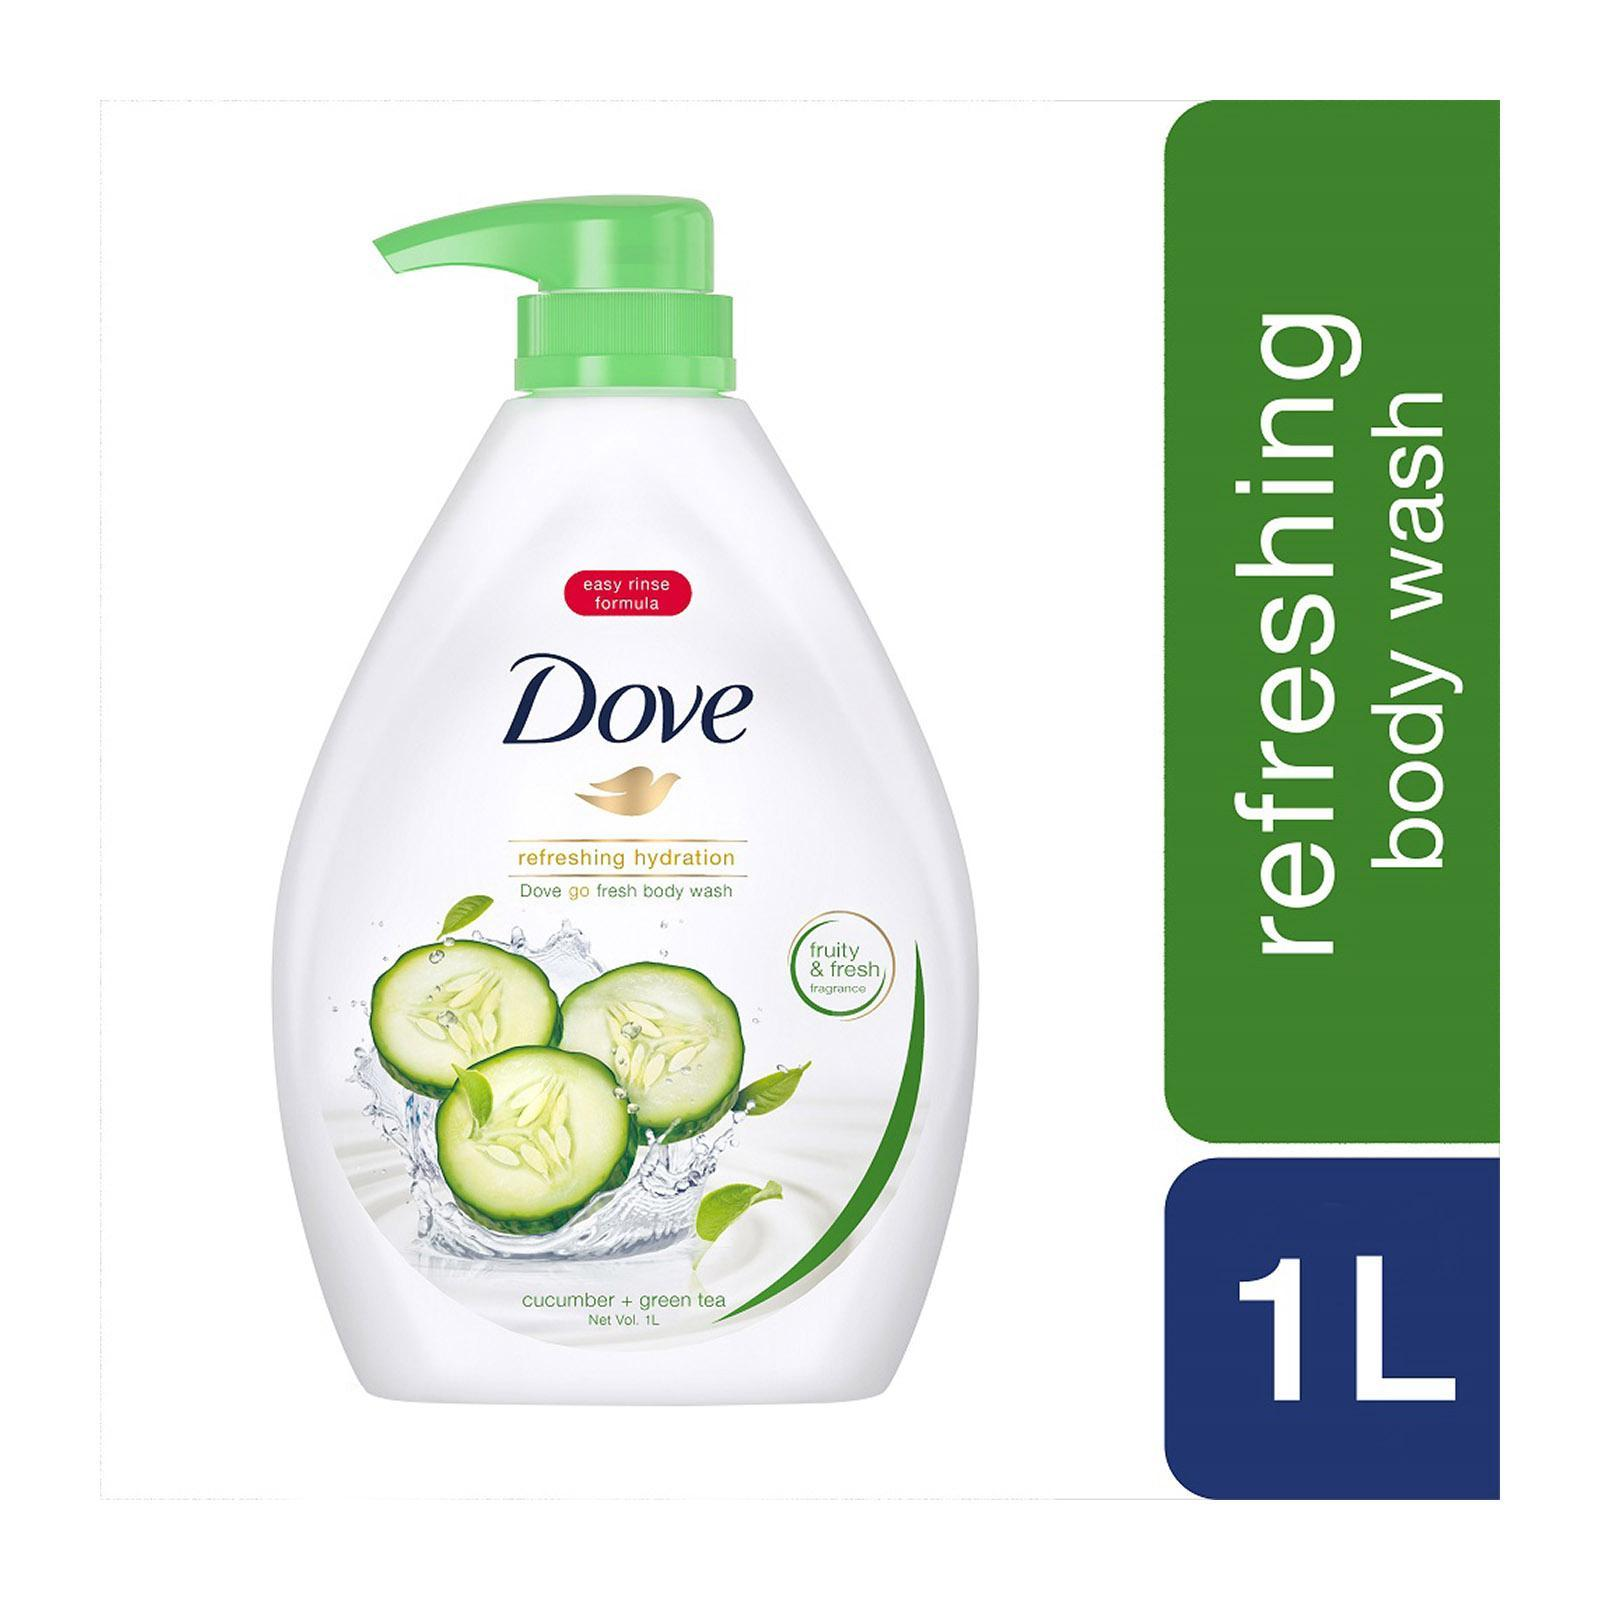 Dove Go Fresh Cucumber Green Tea Paraben-free Body Wash